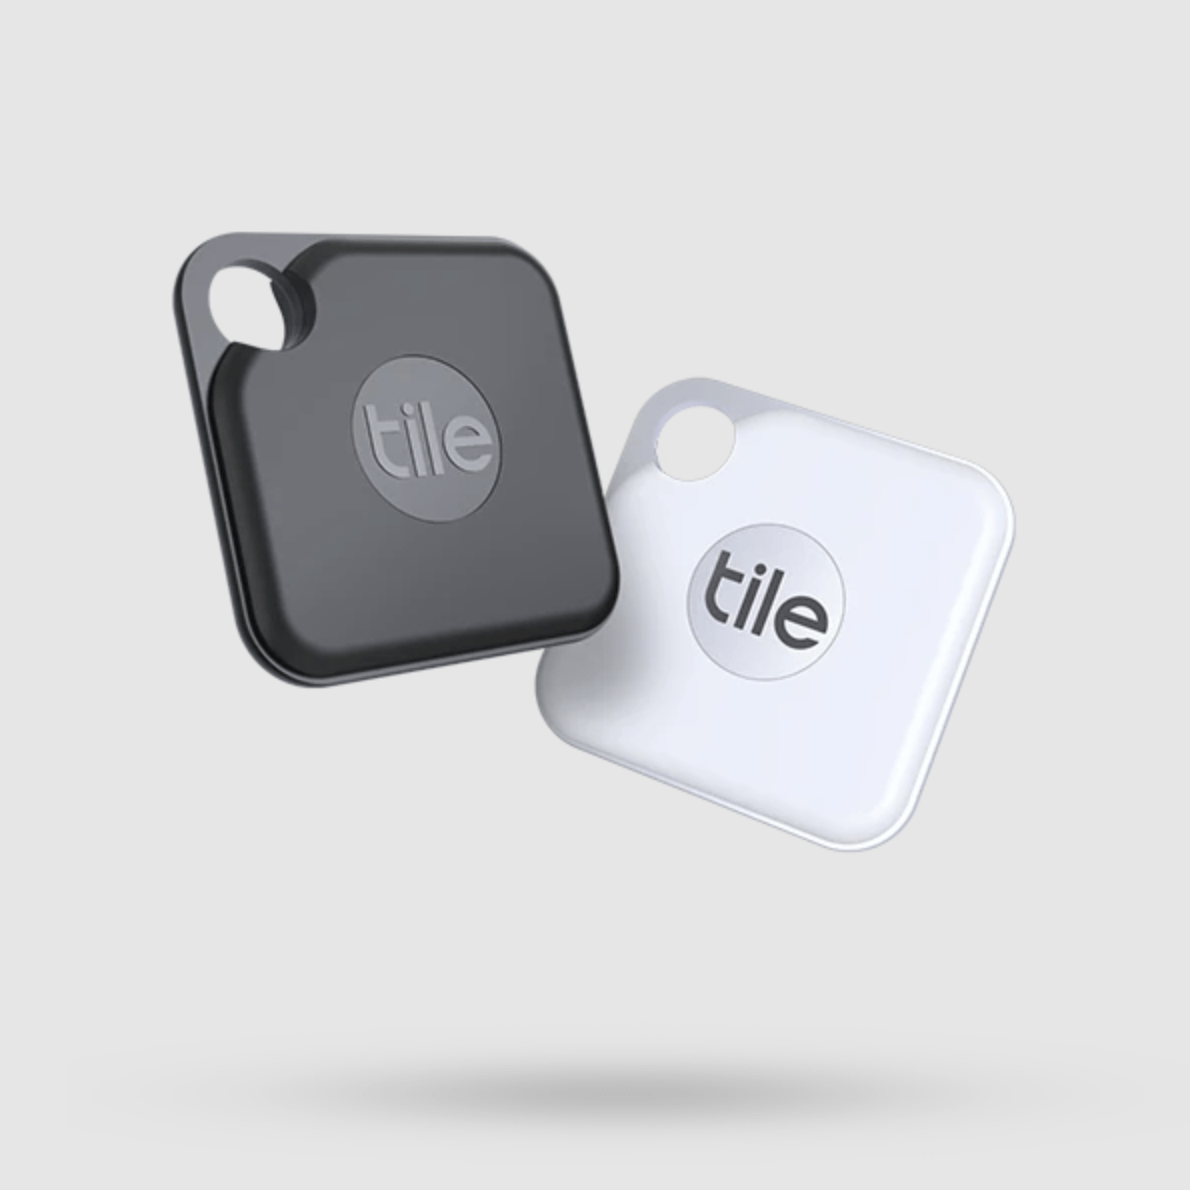 Tile's Pro The powerful finder